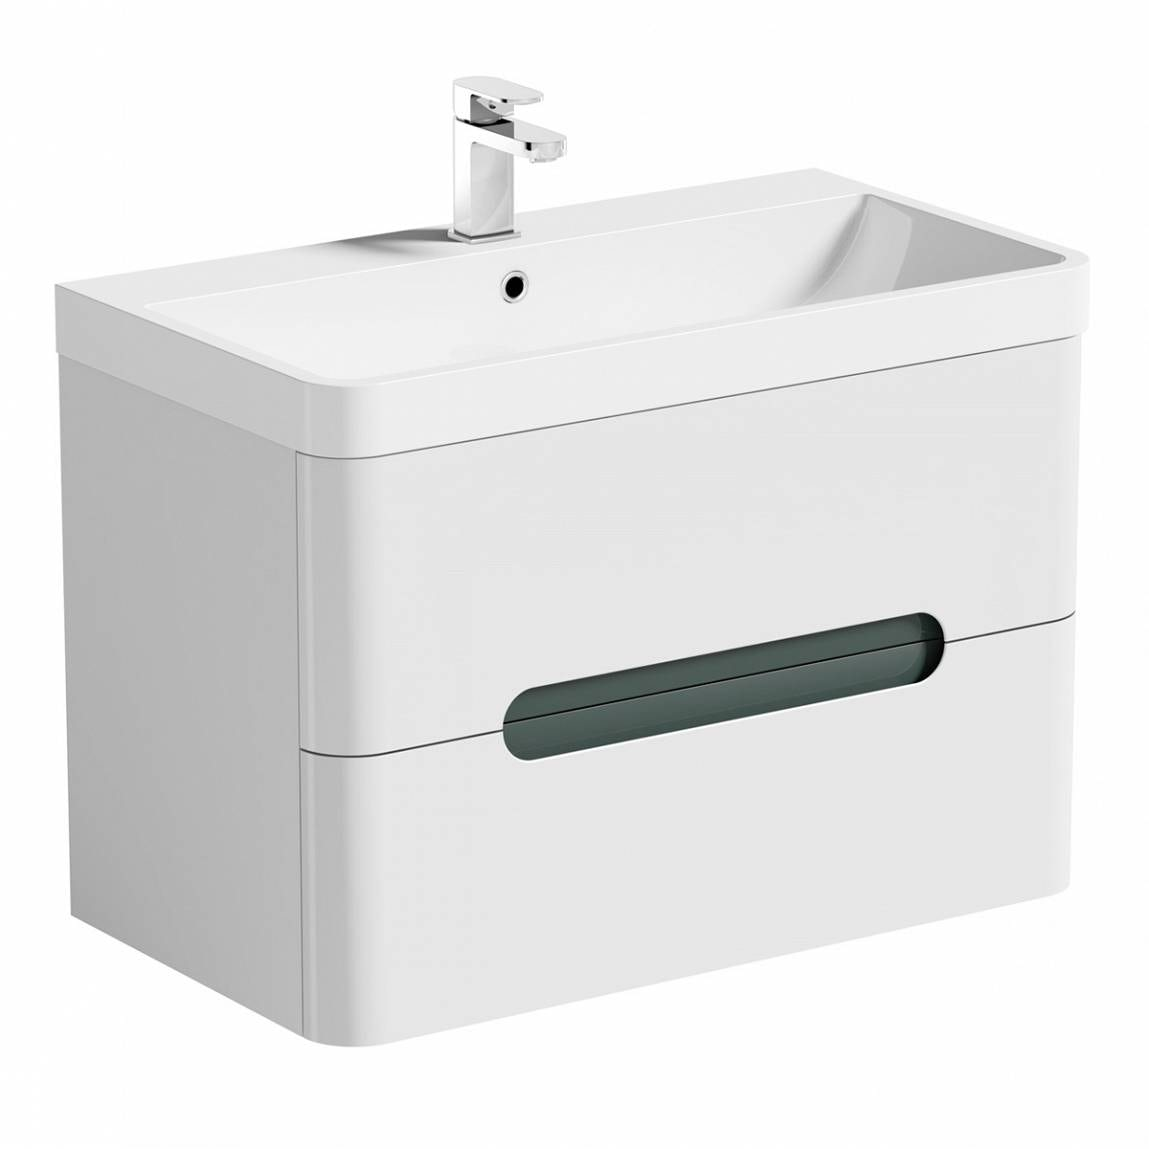 Mode Ellis slate wall hung vanity drawer unit and basin 800mm